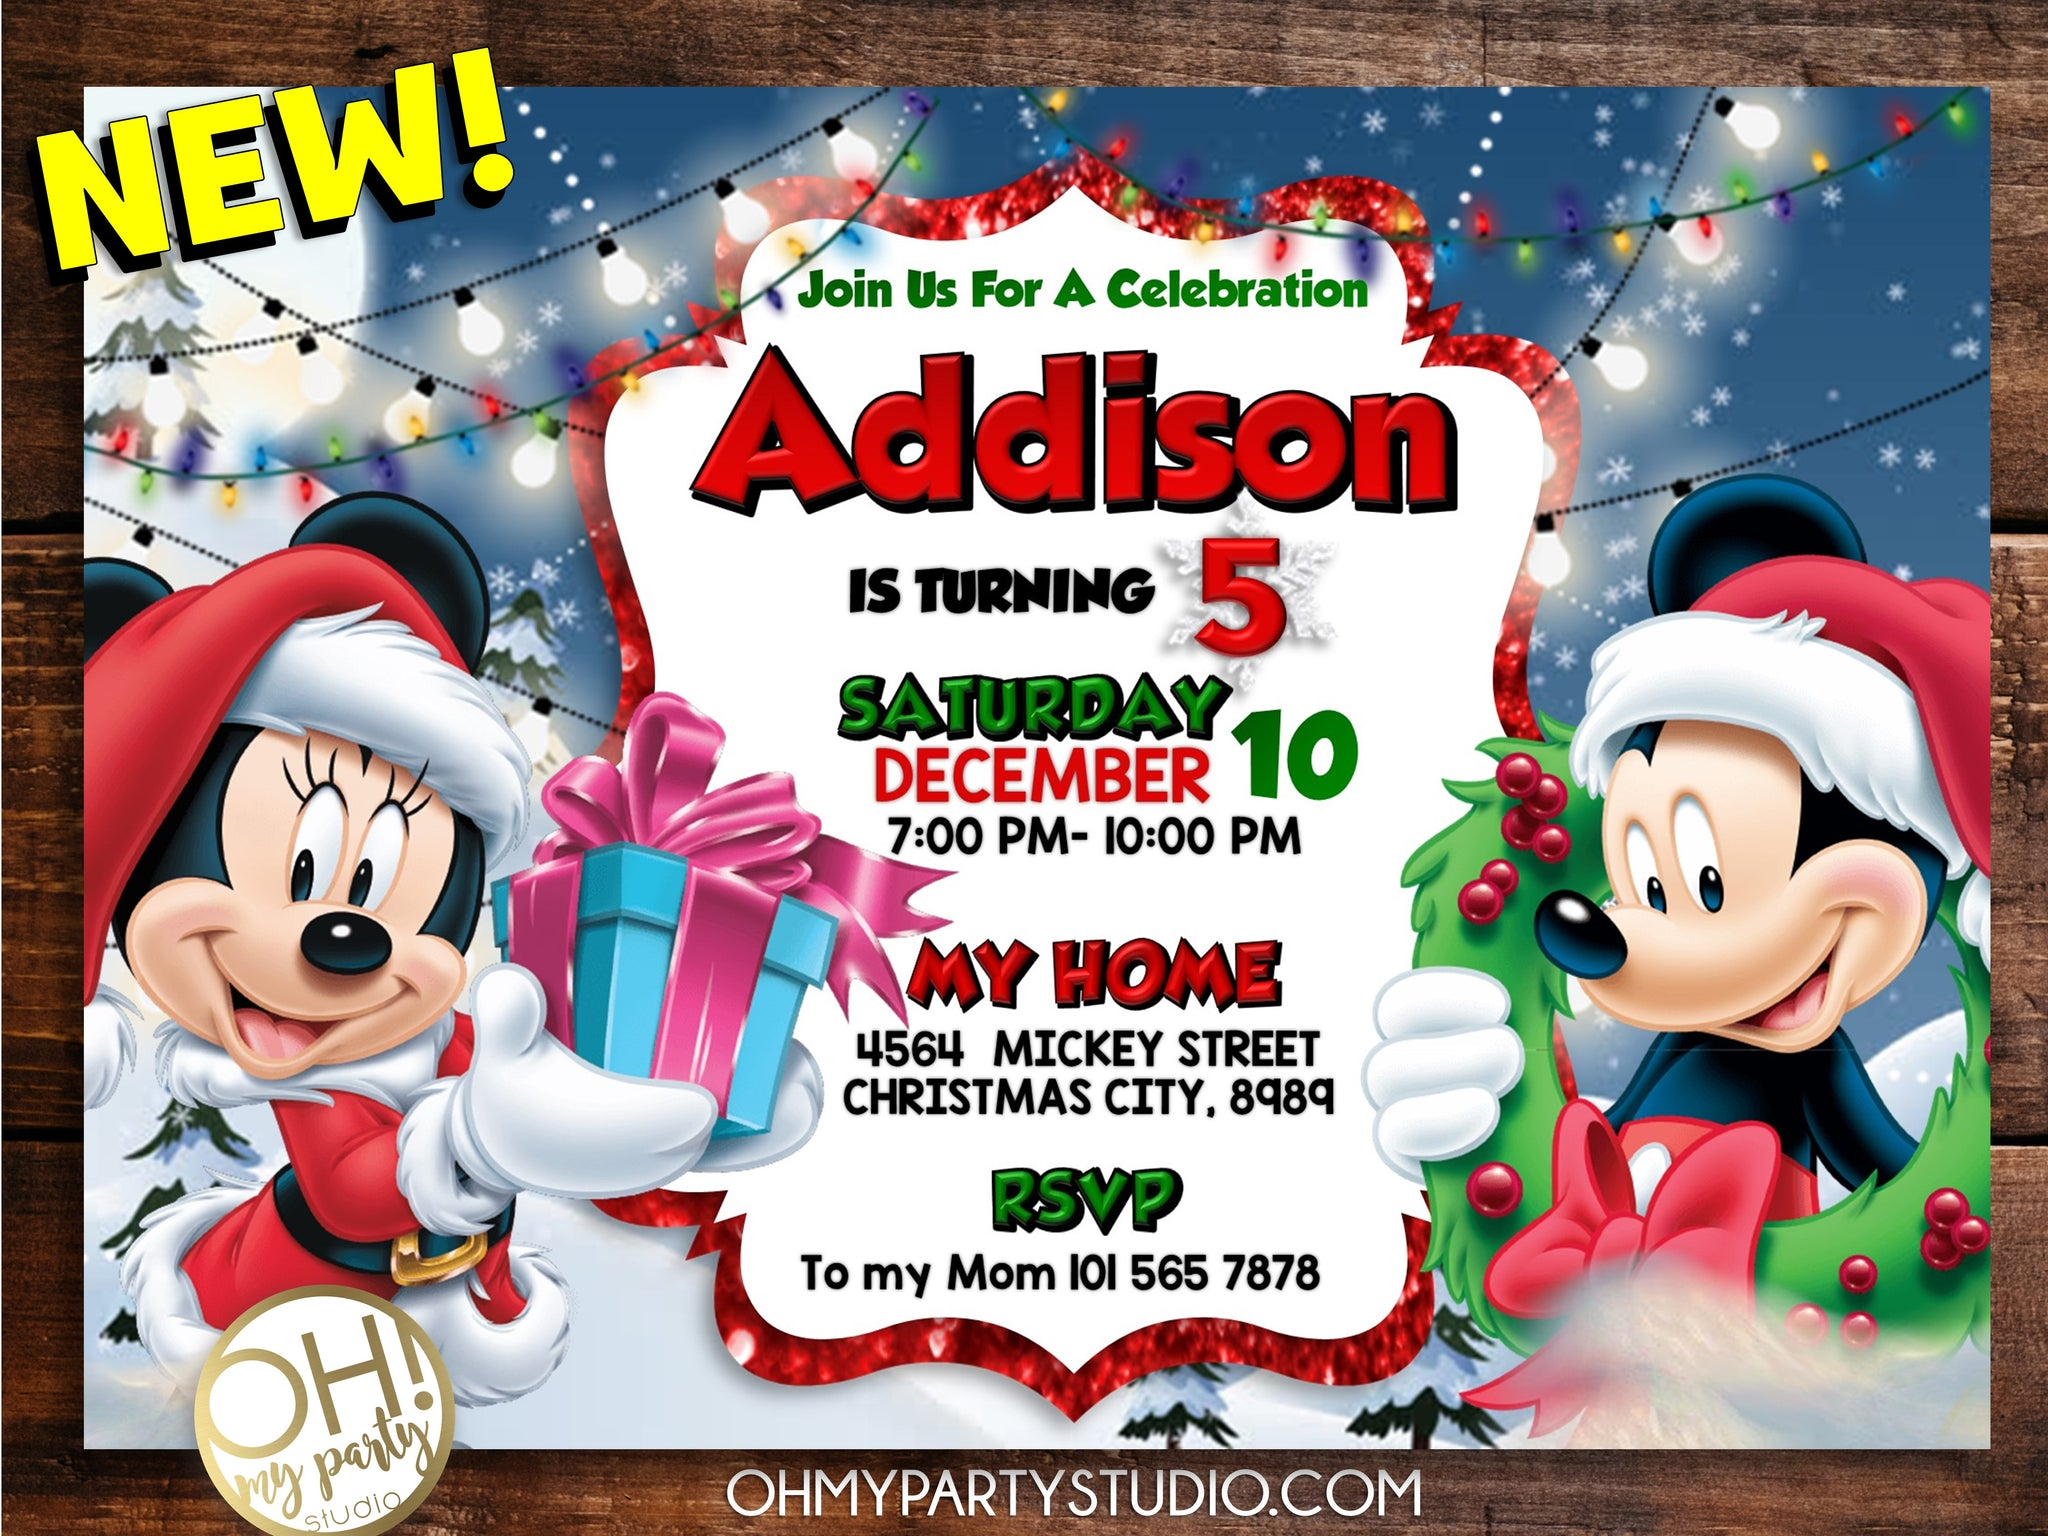 MICKEY MOUSE CHRISTMAS INVITATION, MINNIE MOUSE CHRISTMAS INVITATION, MICKEY AND MINNIE CHRISTMAS INVITATION, MICKEY CHRISTMAS BIRTHDAY INVITATION, MINNIE CHRISTMAS BIRTHDAY INVITATION, MICKEY MOUSE CHRISTMAS PARTY, MICKEY CHRISTMAS PARTY, MICKEY CHRISTMAS BIRTHDAY, MINNIE CHRISTMAS PARTY, MINNIE CHRISTMAS BIRTHDAY, MICKEY CHRISTMAS PARTY IDEAS